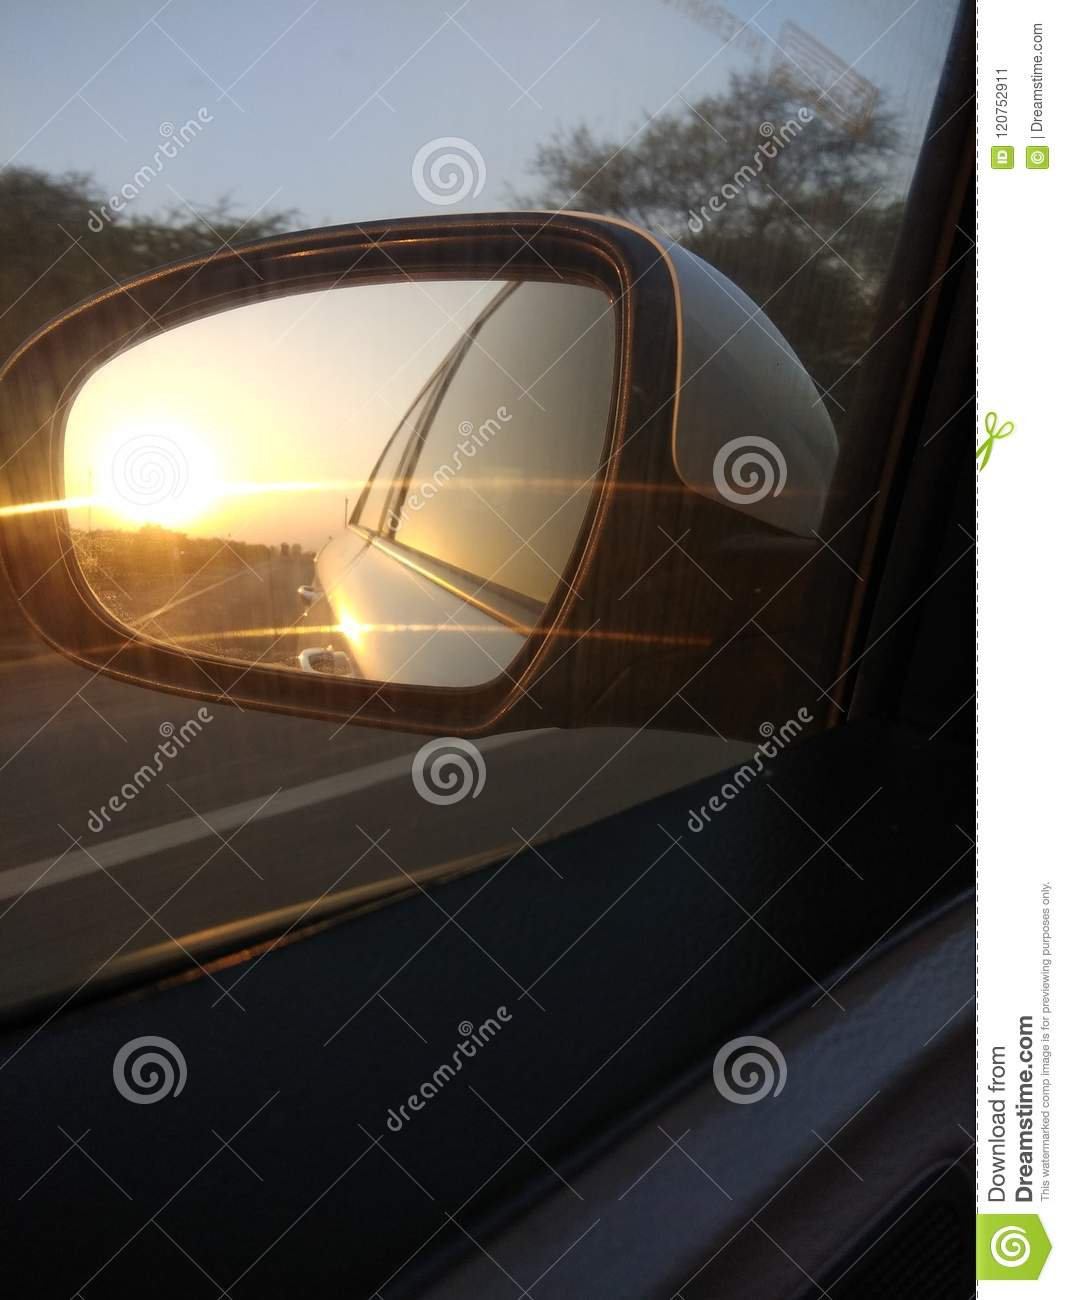 Sun from glass of car